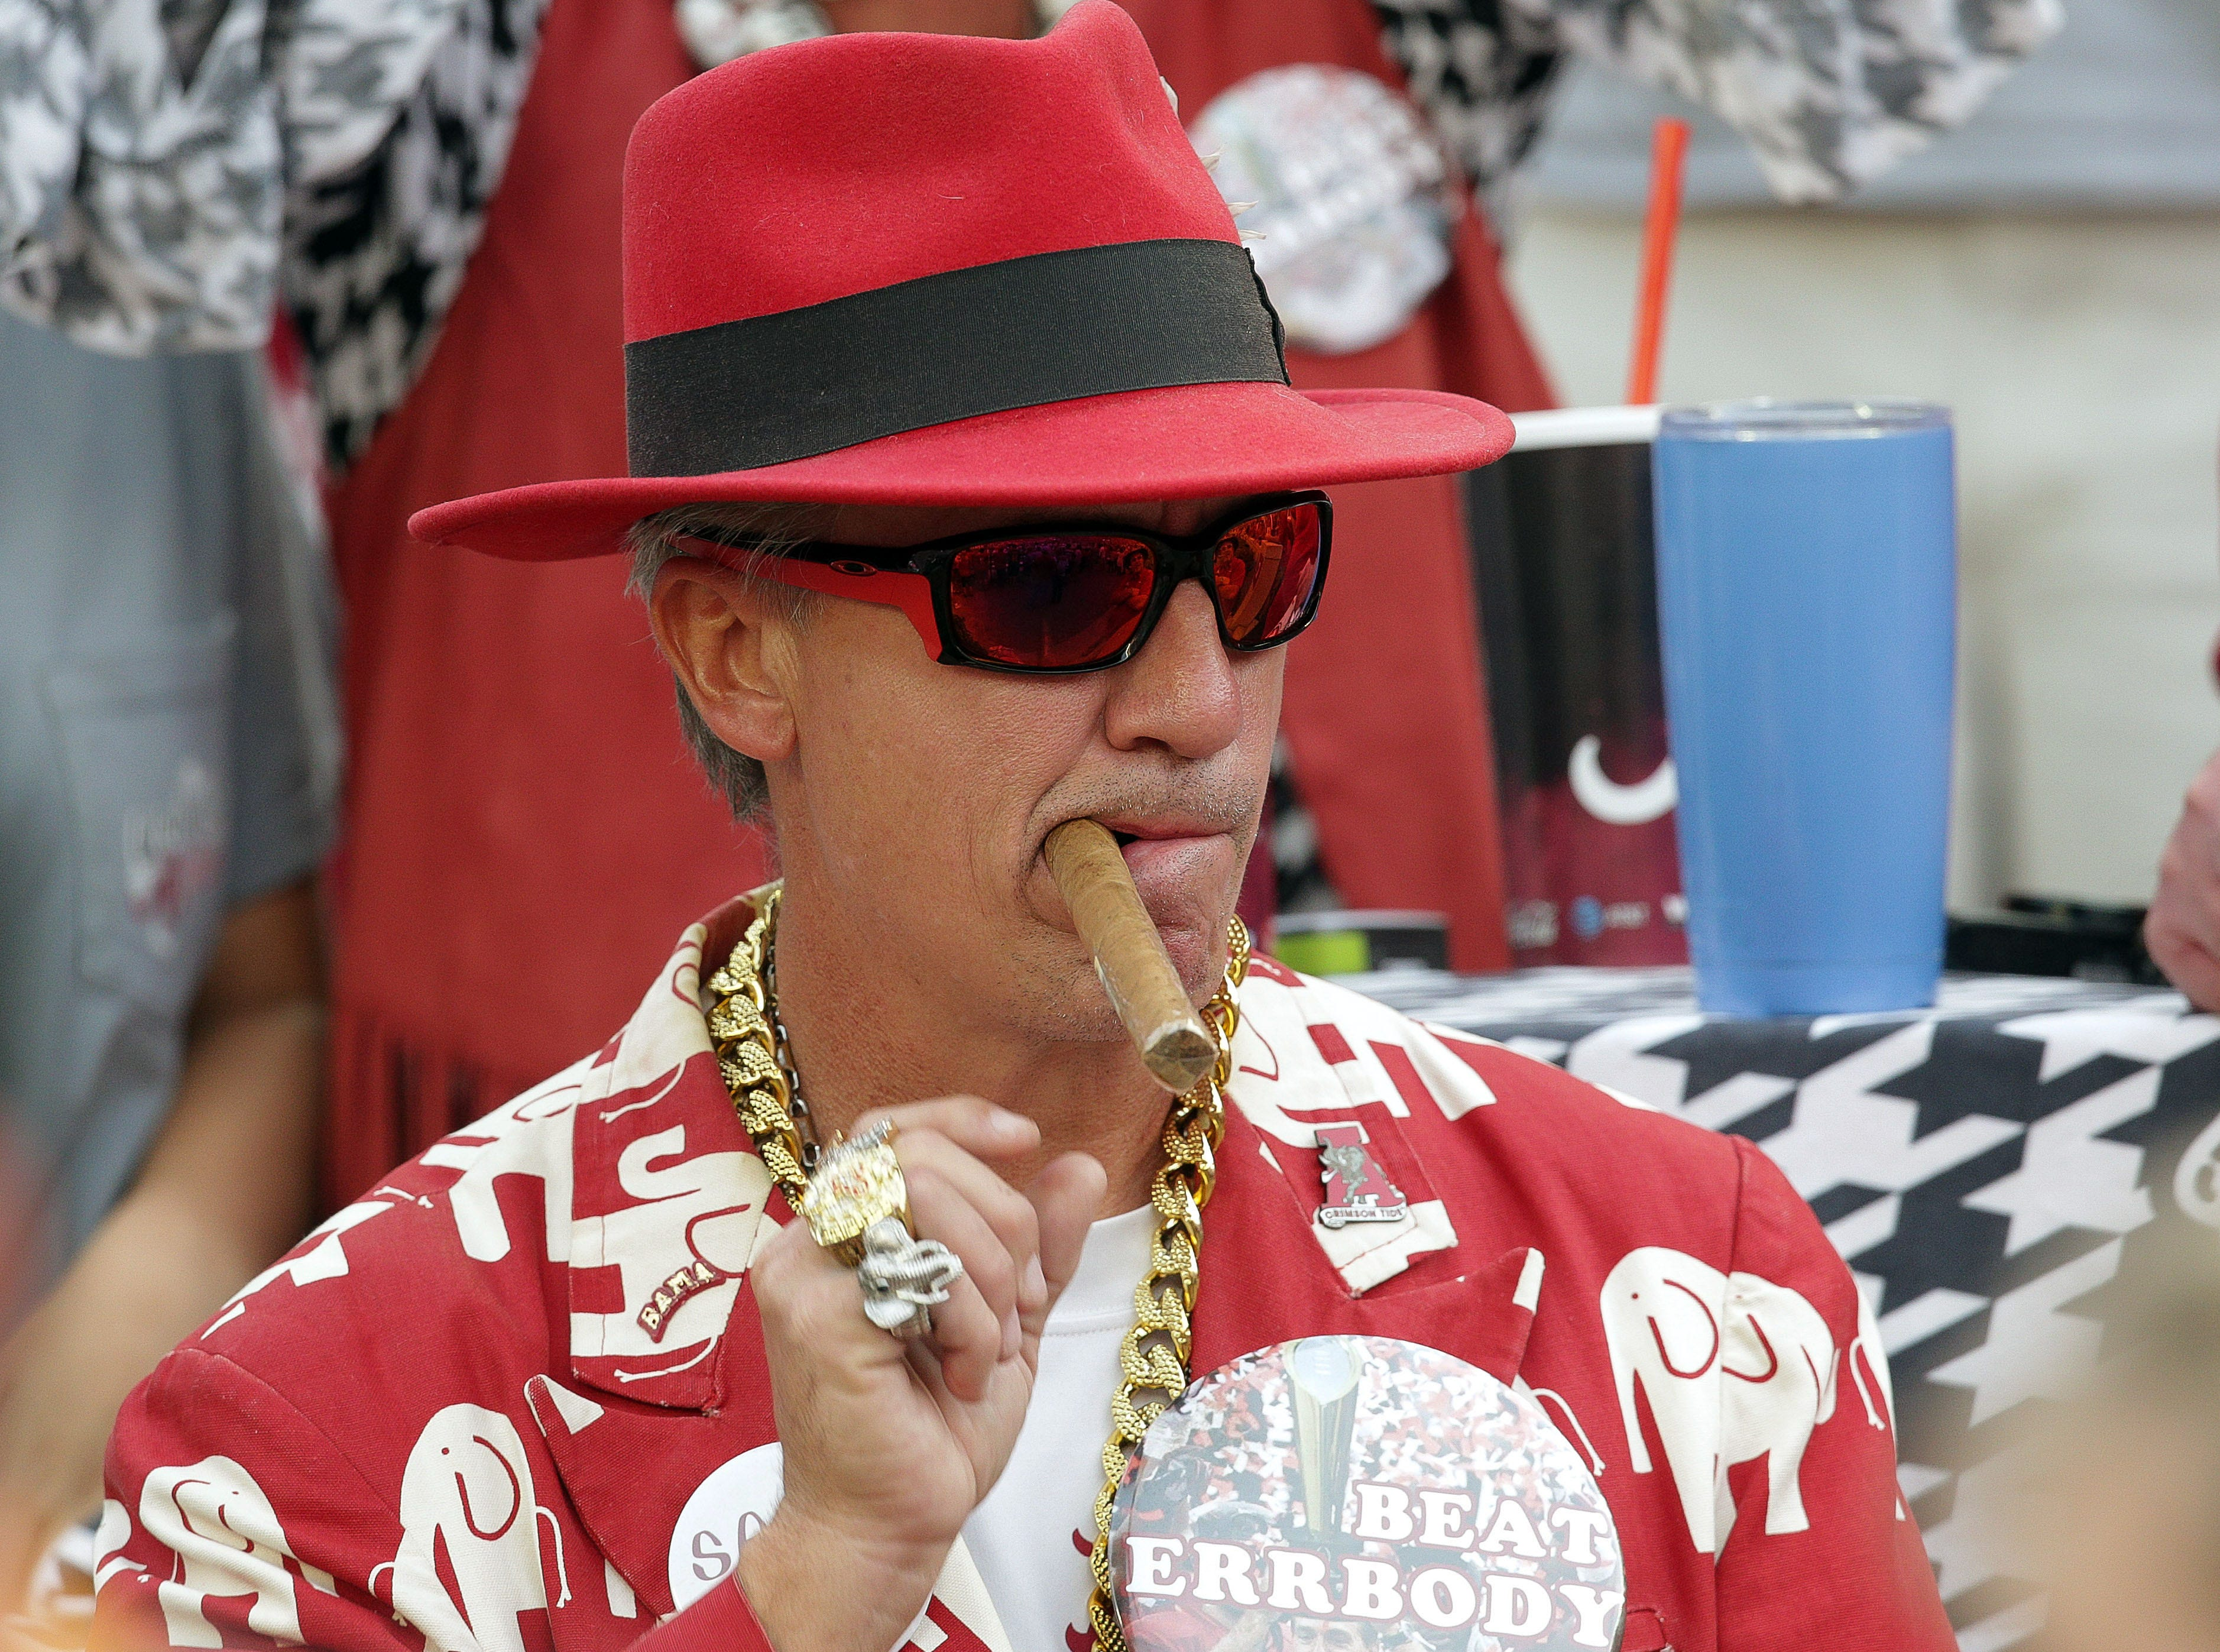 Time to put an end to stupid Tennessee-Alabama cigar-smoking tradition | Opinion